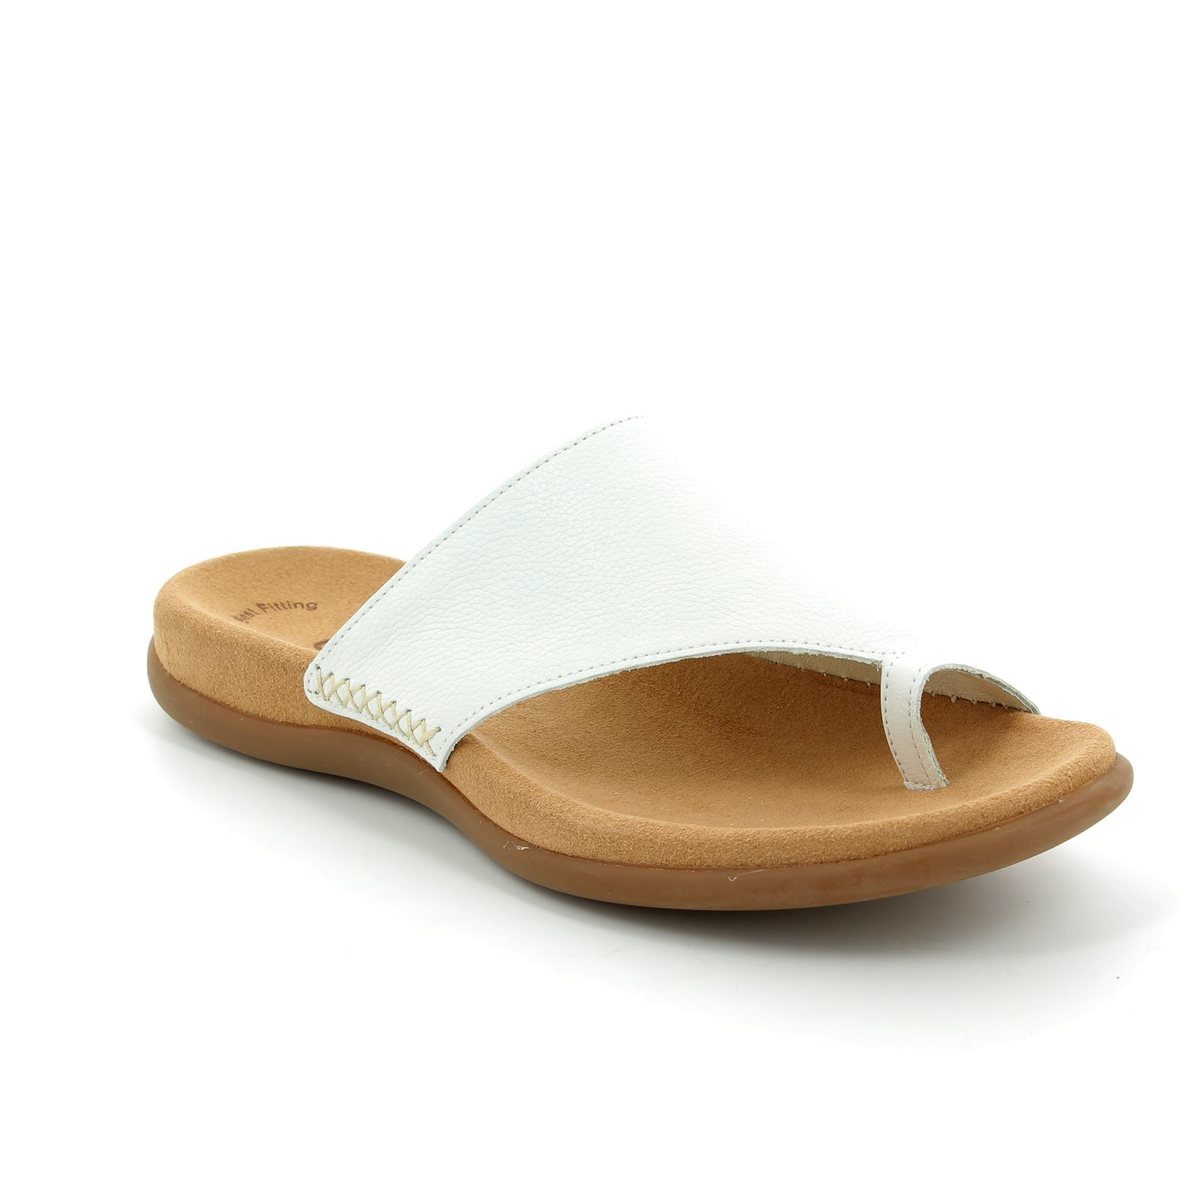 21 White 03 700 Sandals Lanzarote Gabor vON8nm0yw